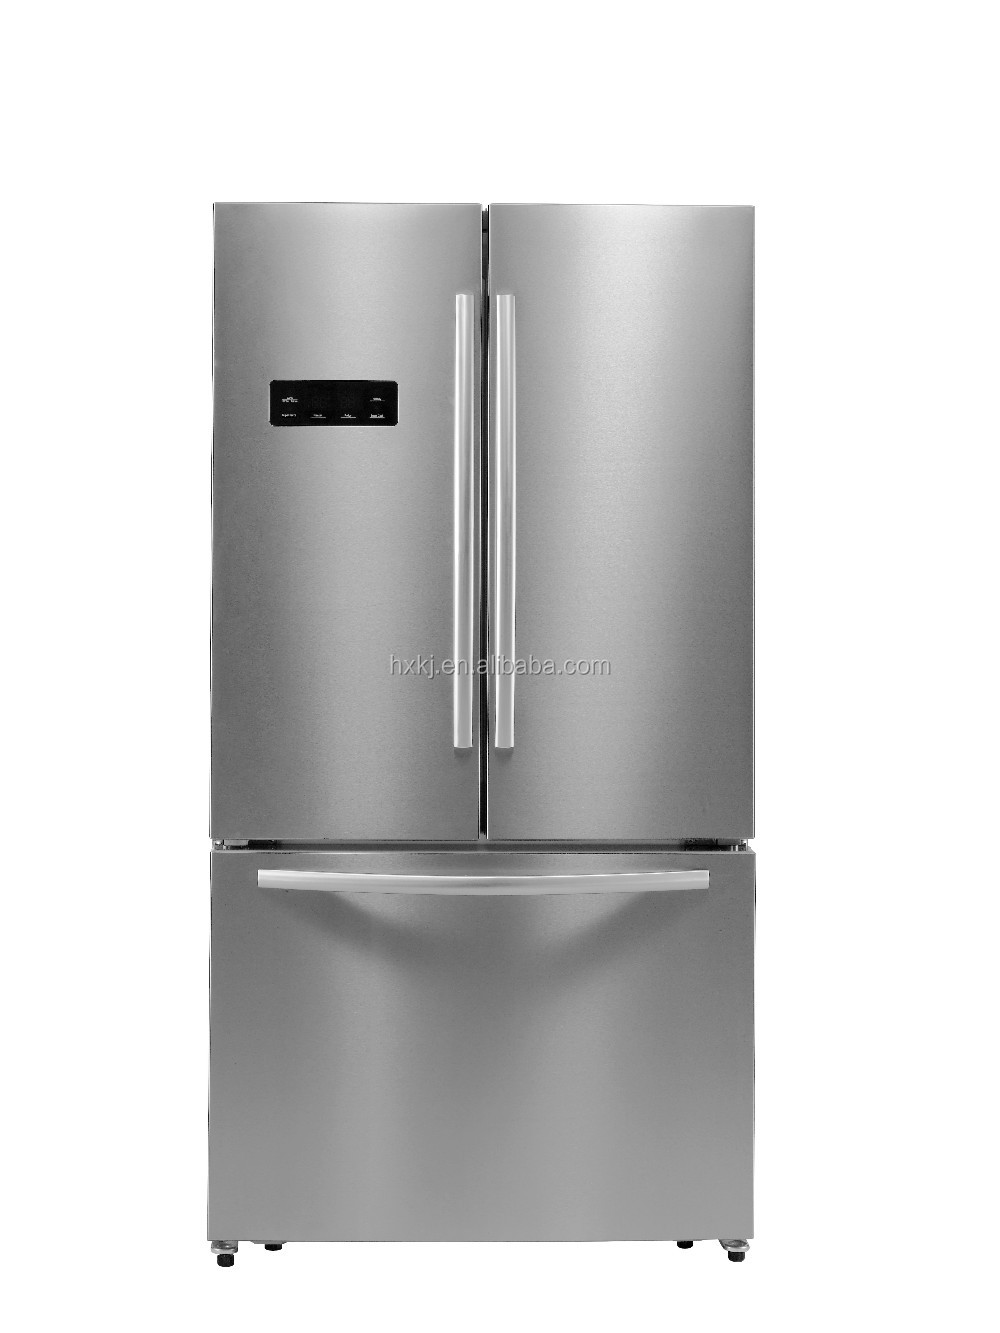 Wholesale Household Appliances Refrigerator And Freezer